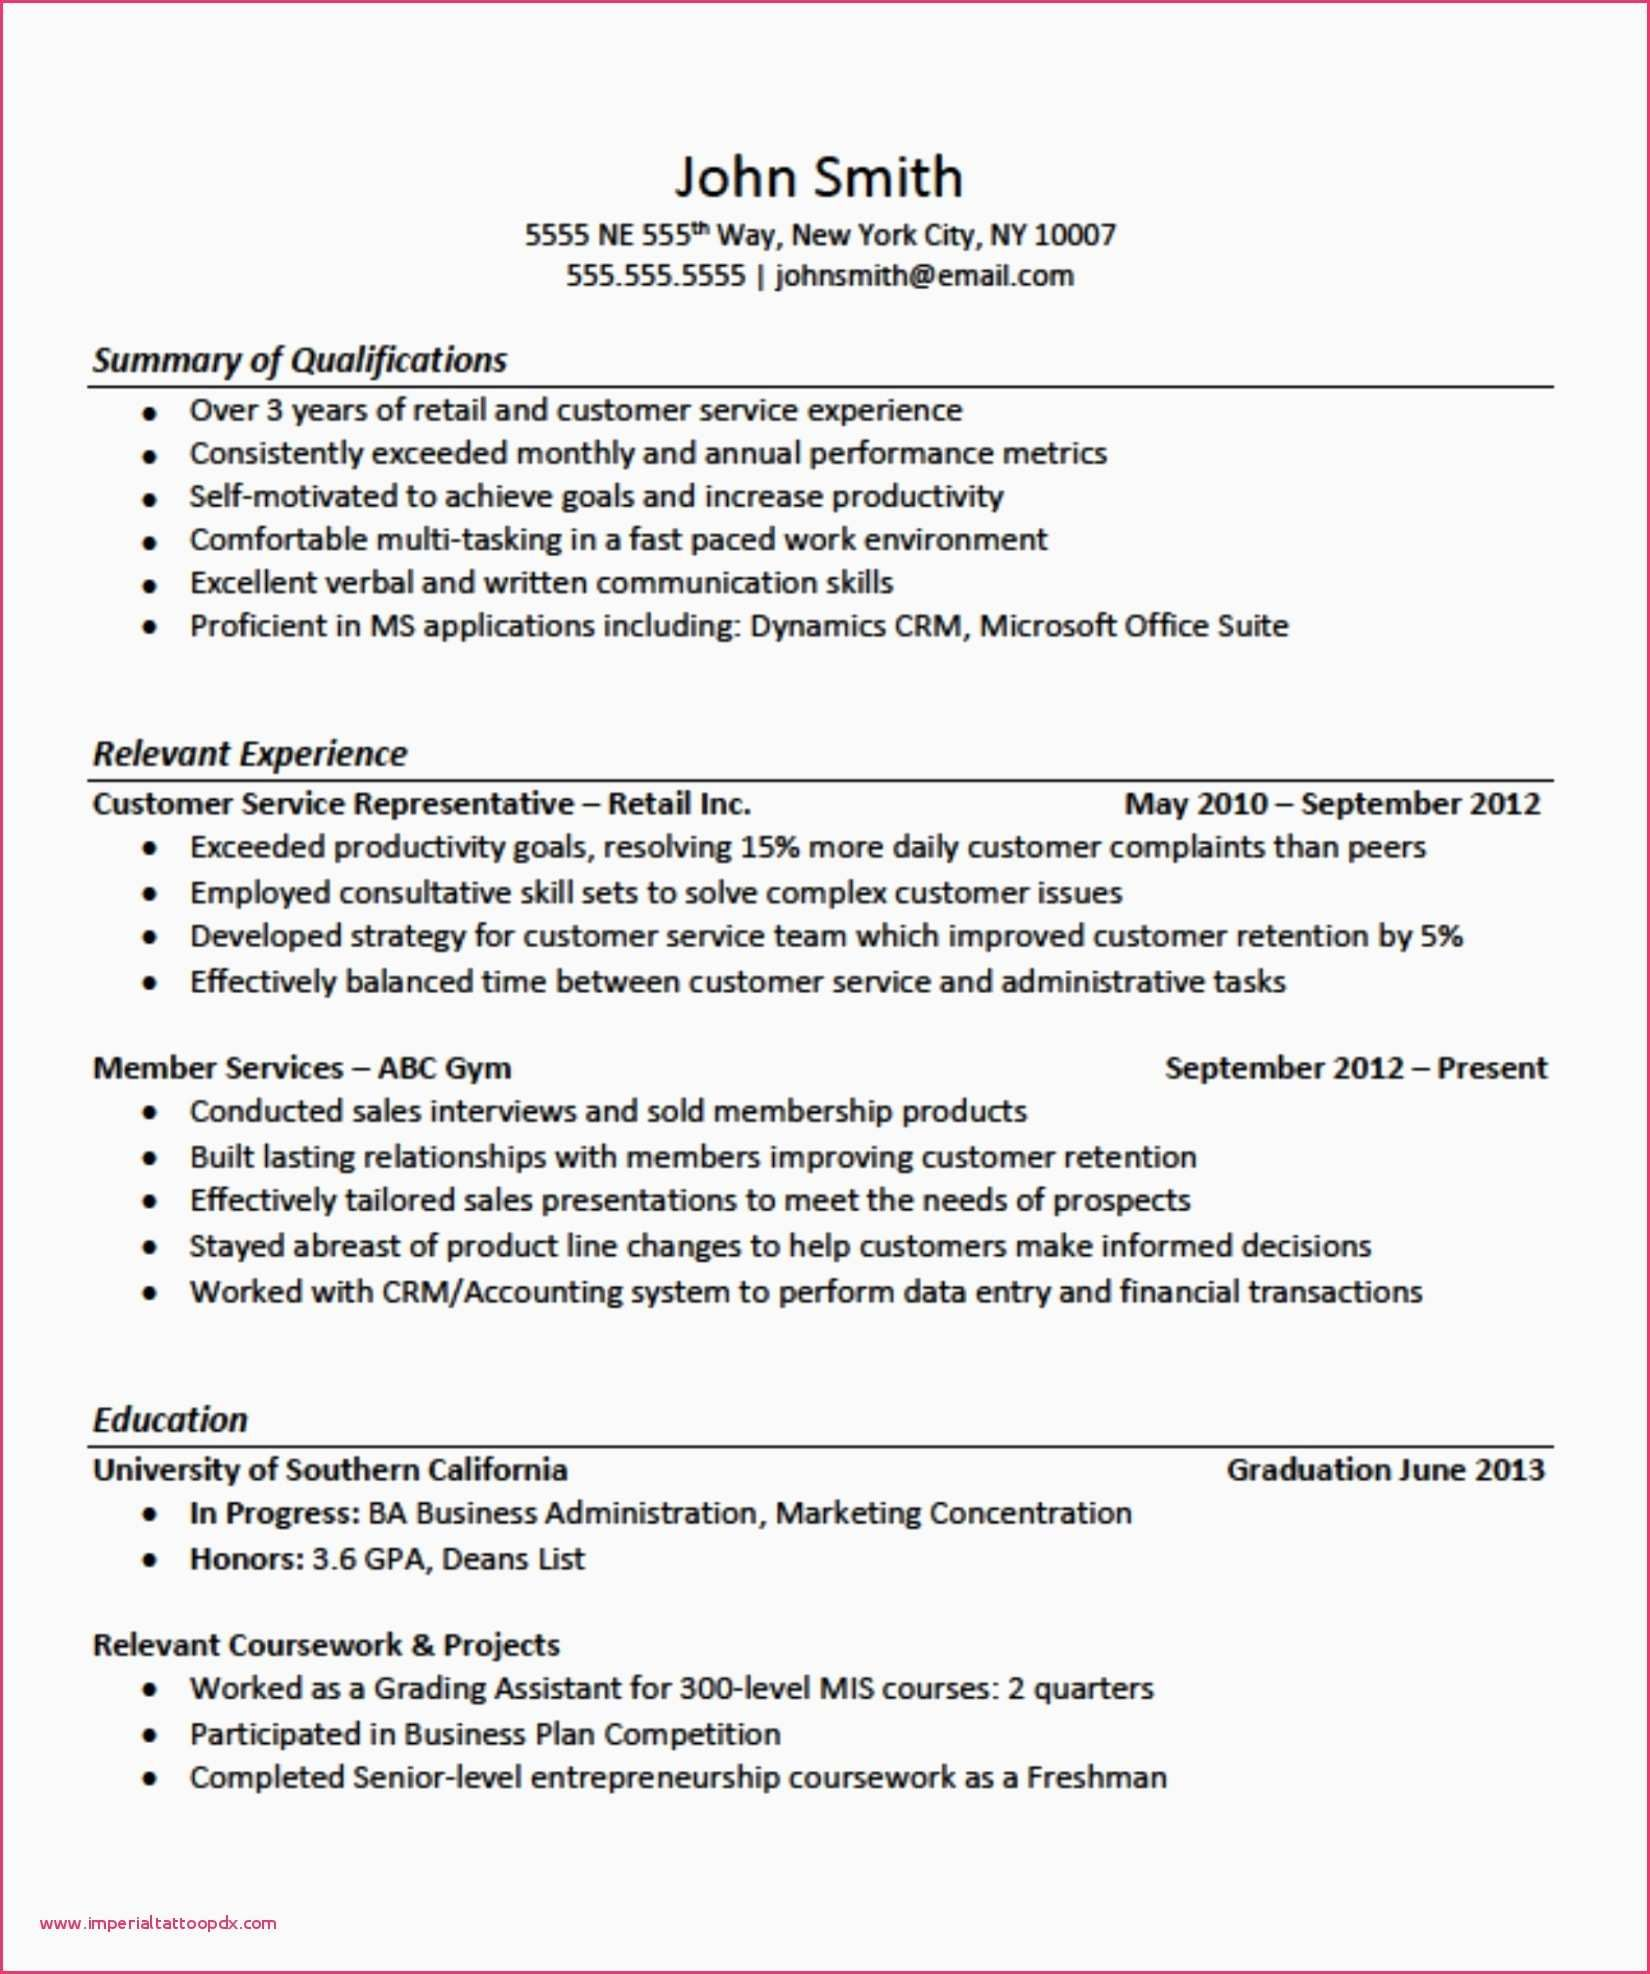 77 Elegant Image Of Sample Resume for Professional